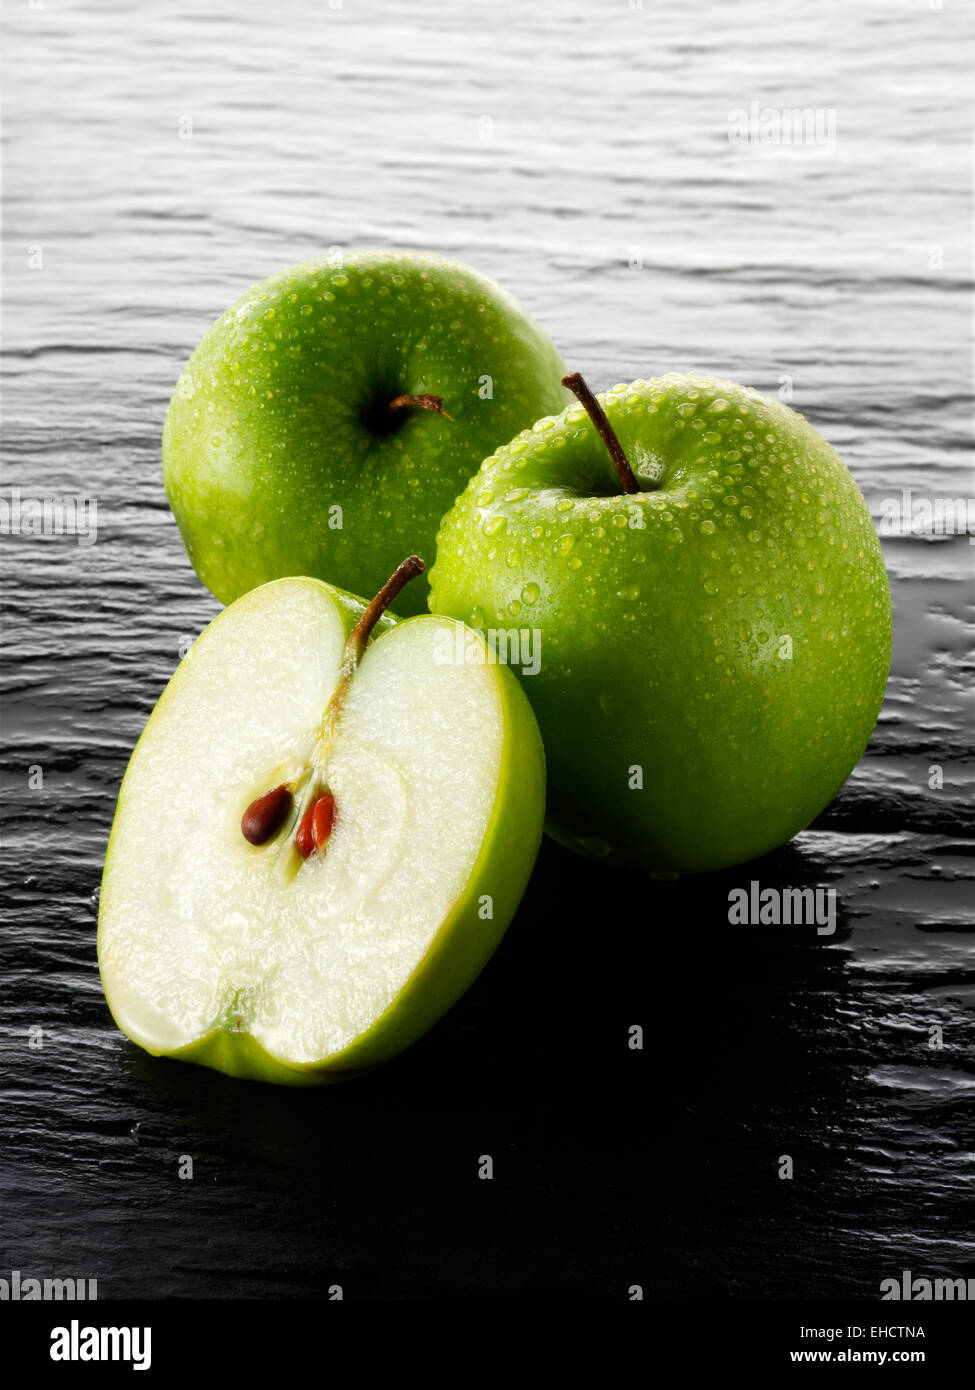 Whole & cut Granny Smith apples - Stock Image